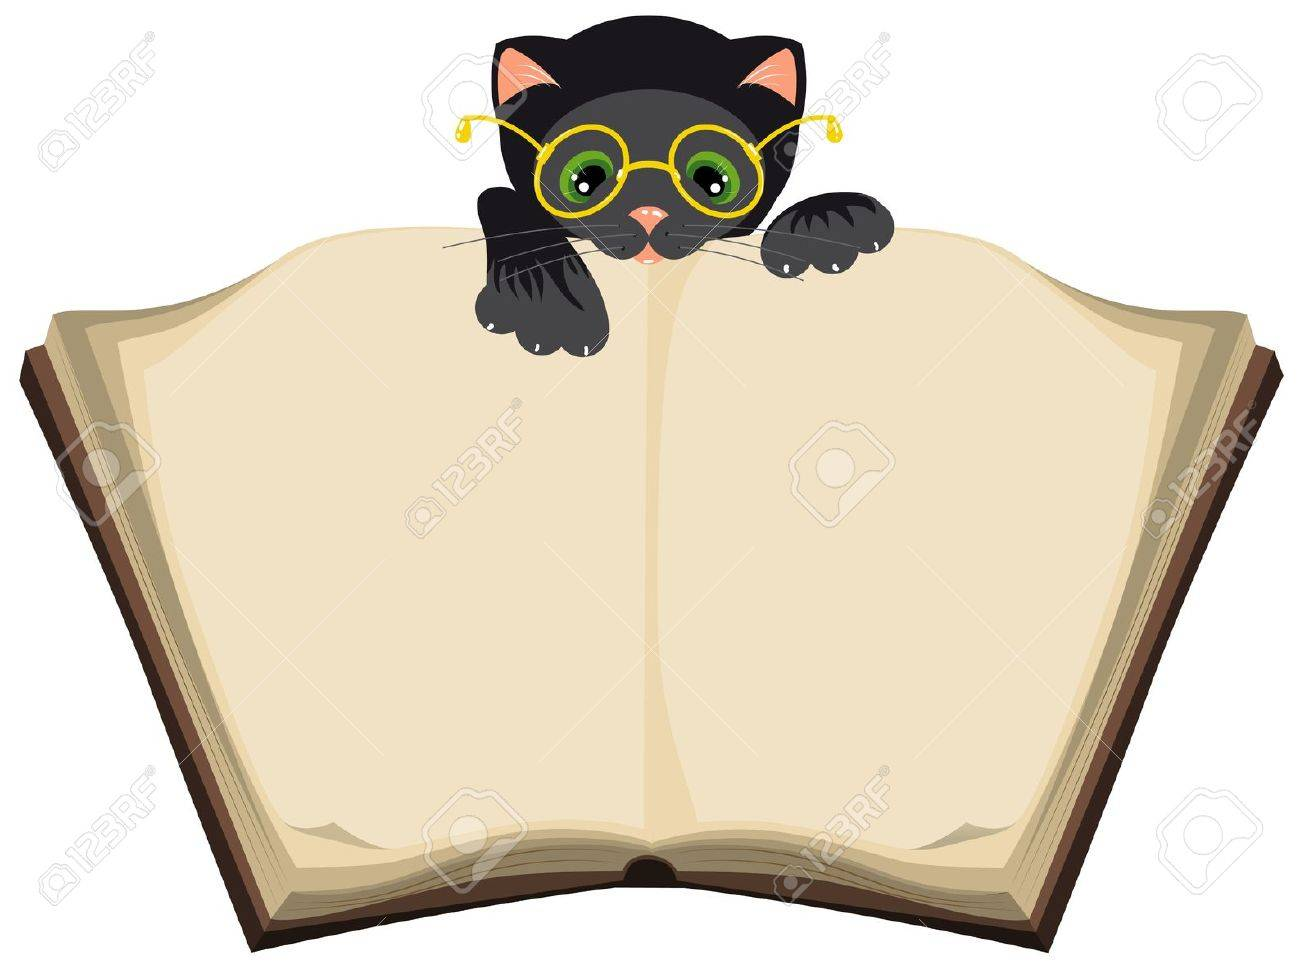 cat reading open book illustration in vector format eps royalty free